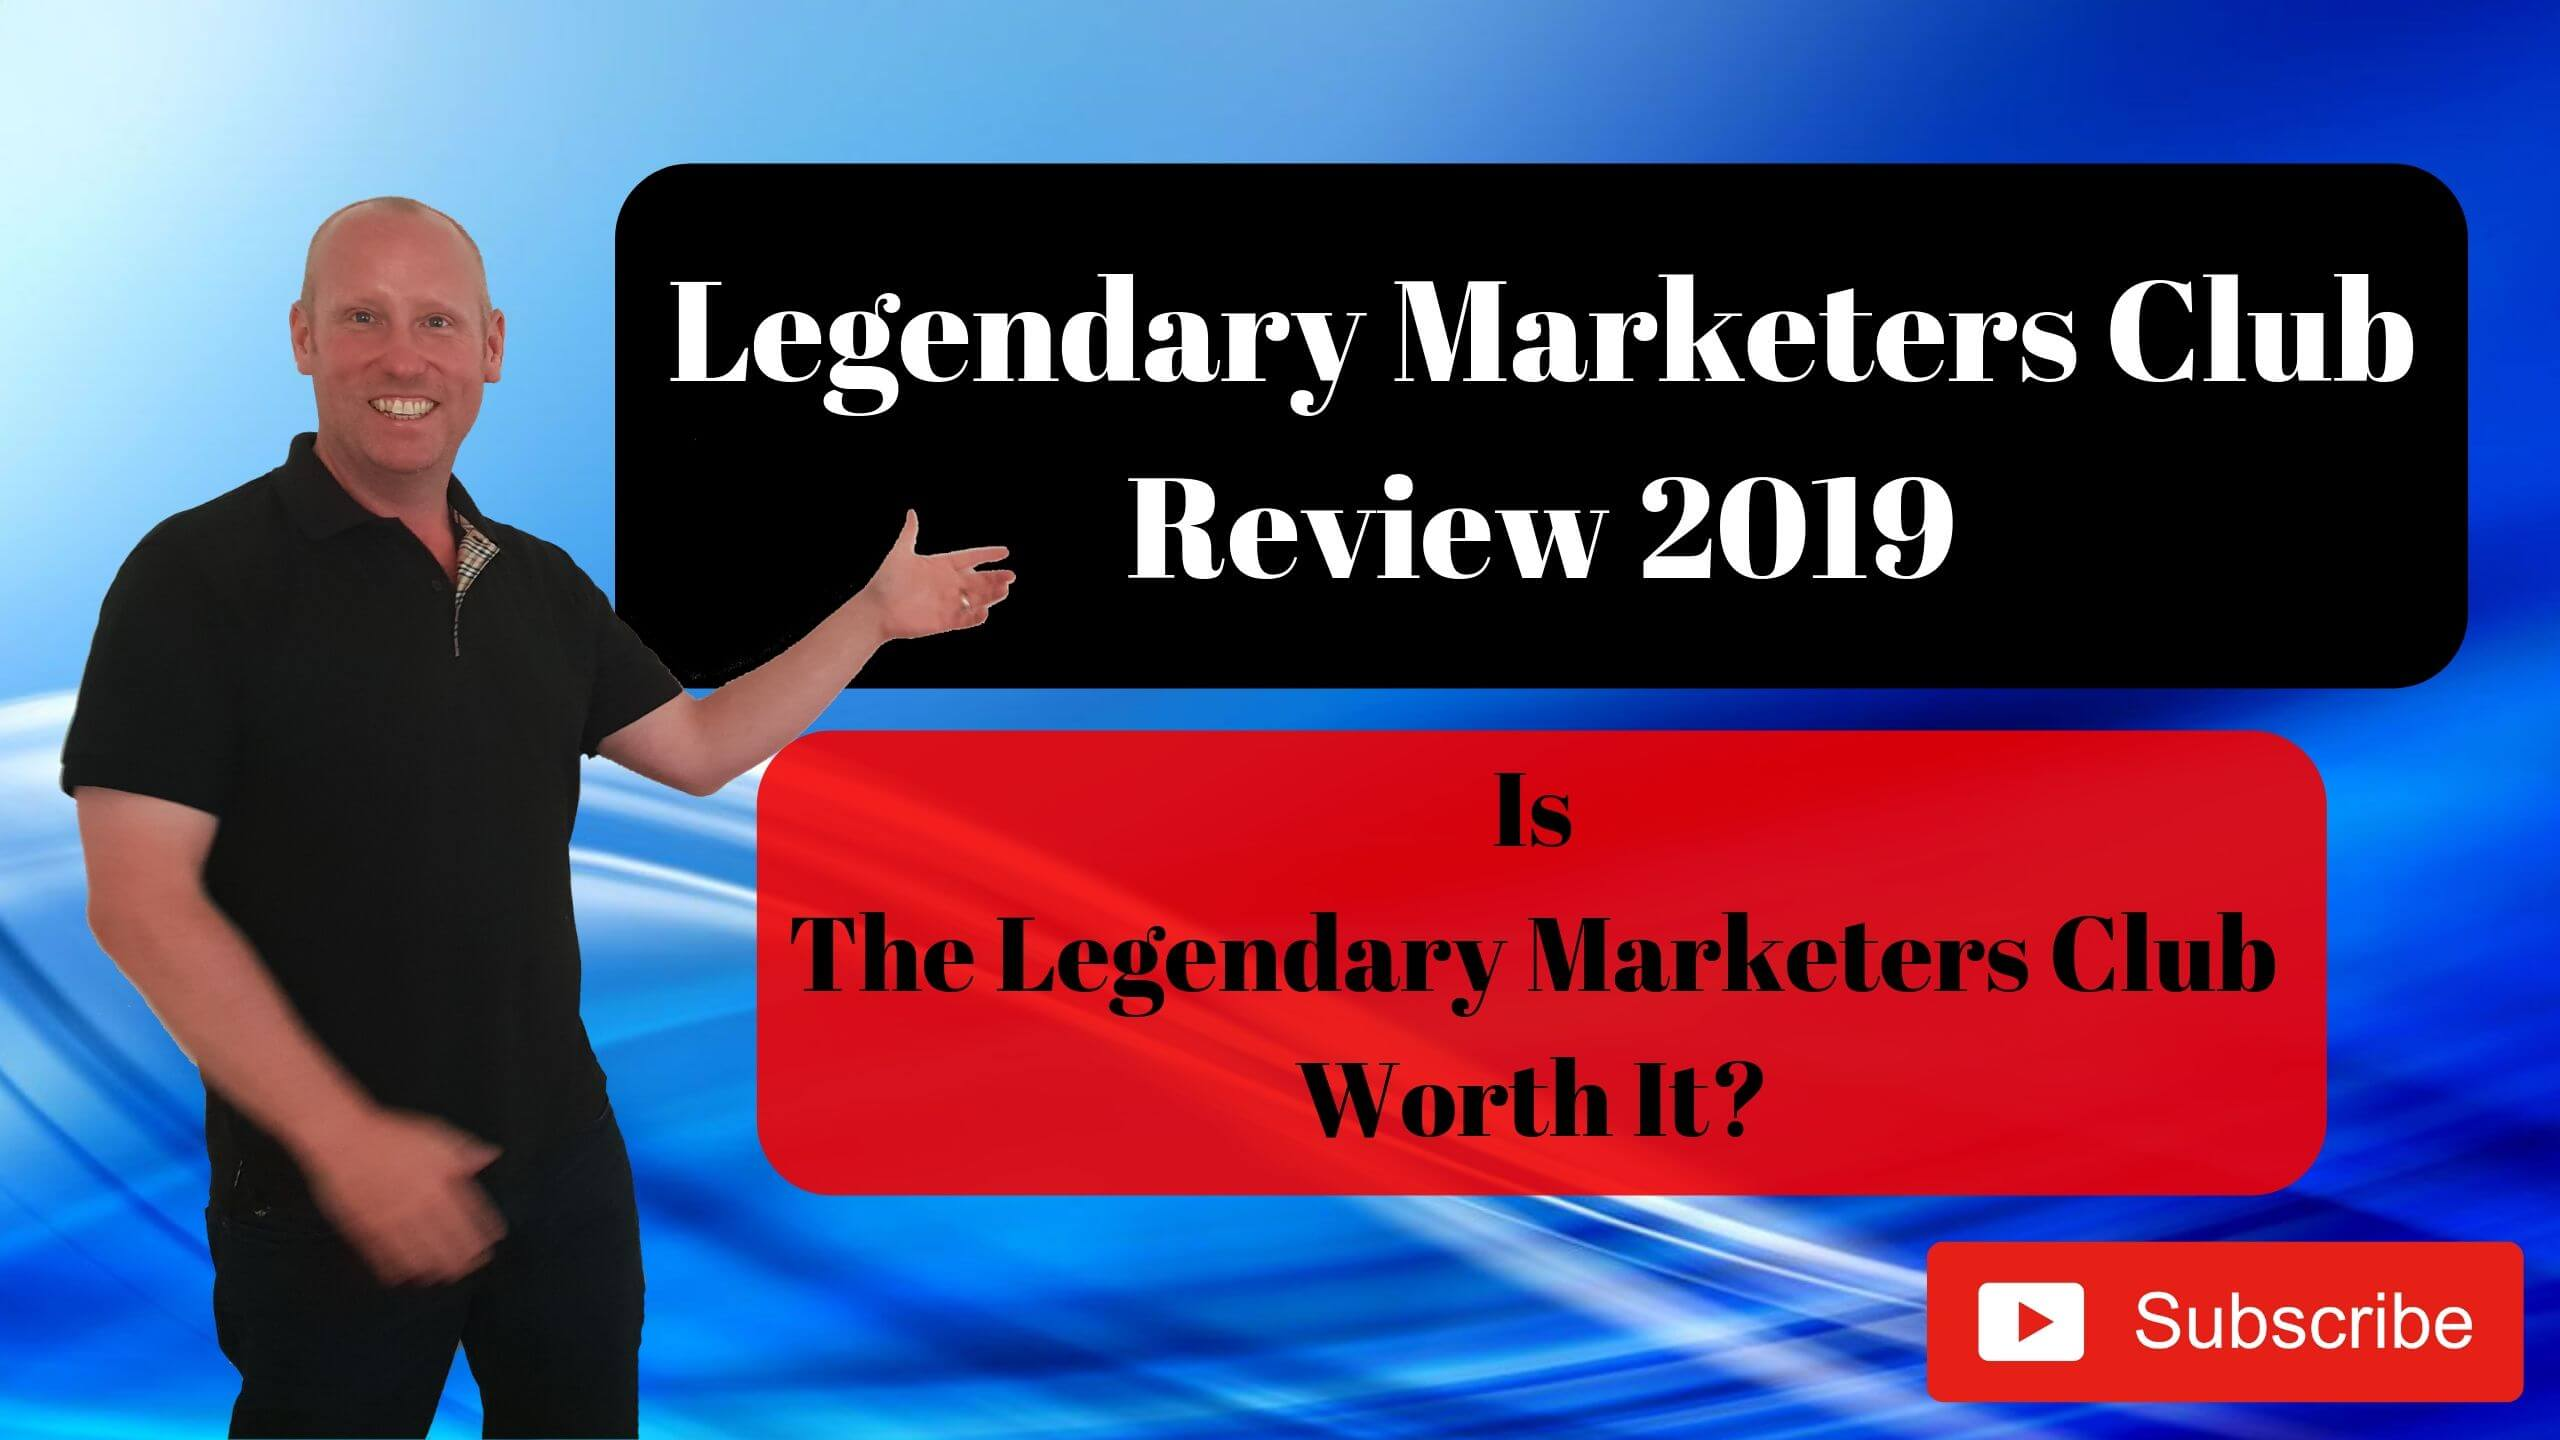 Legendary Marketer  Internet Marketing Program Coupon Voucher Code 2020